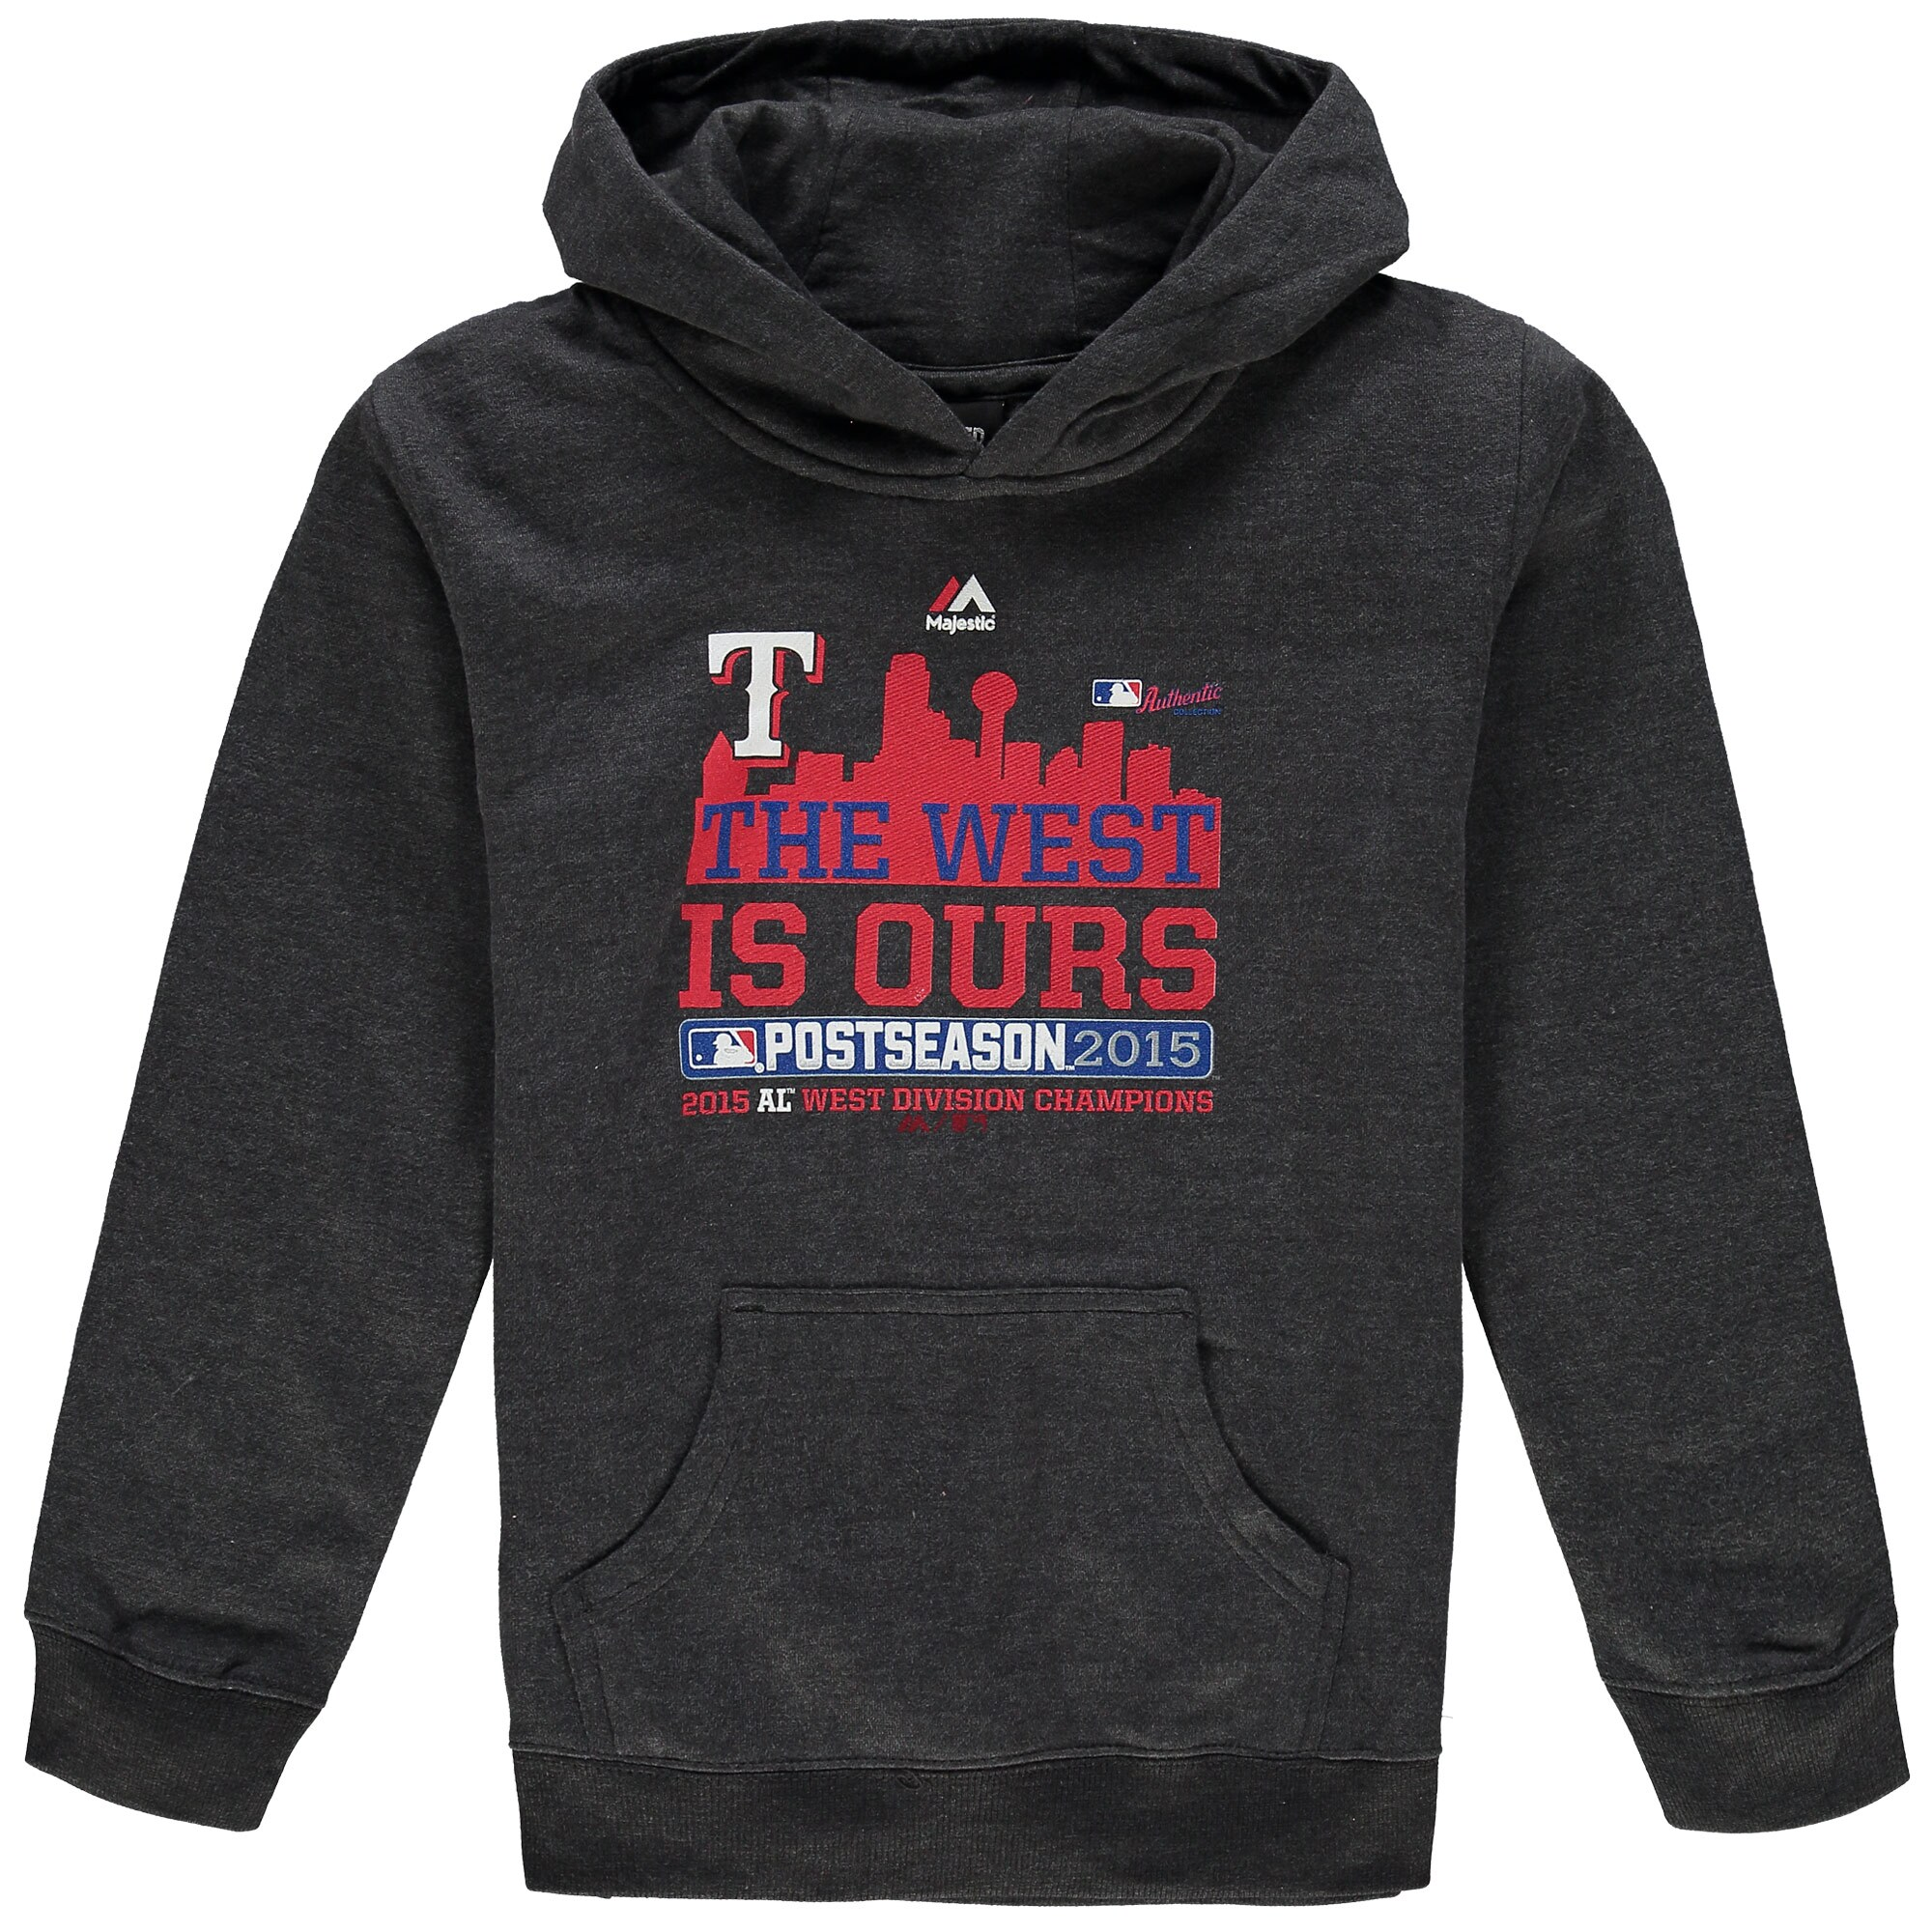 Texas Rangers Majestic Youth 2015 Division Champions Locker Room Hoodie - Charcoal